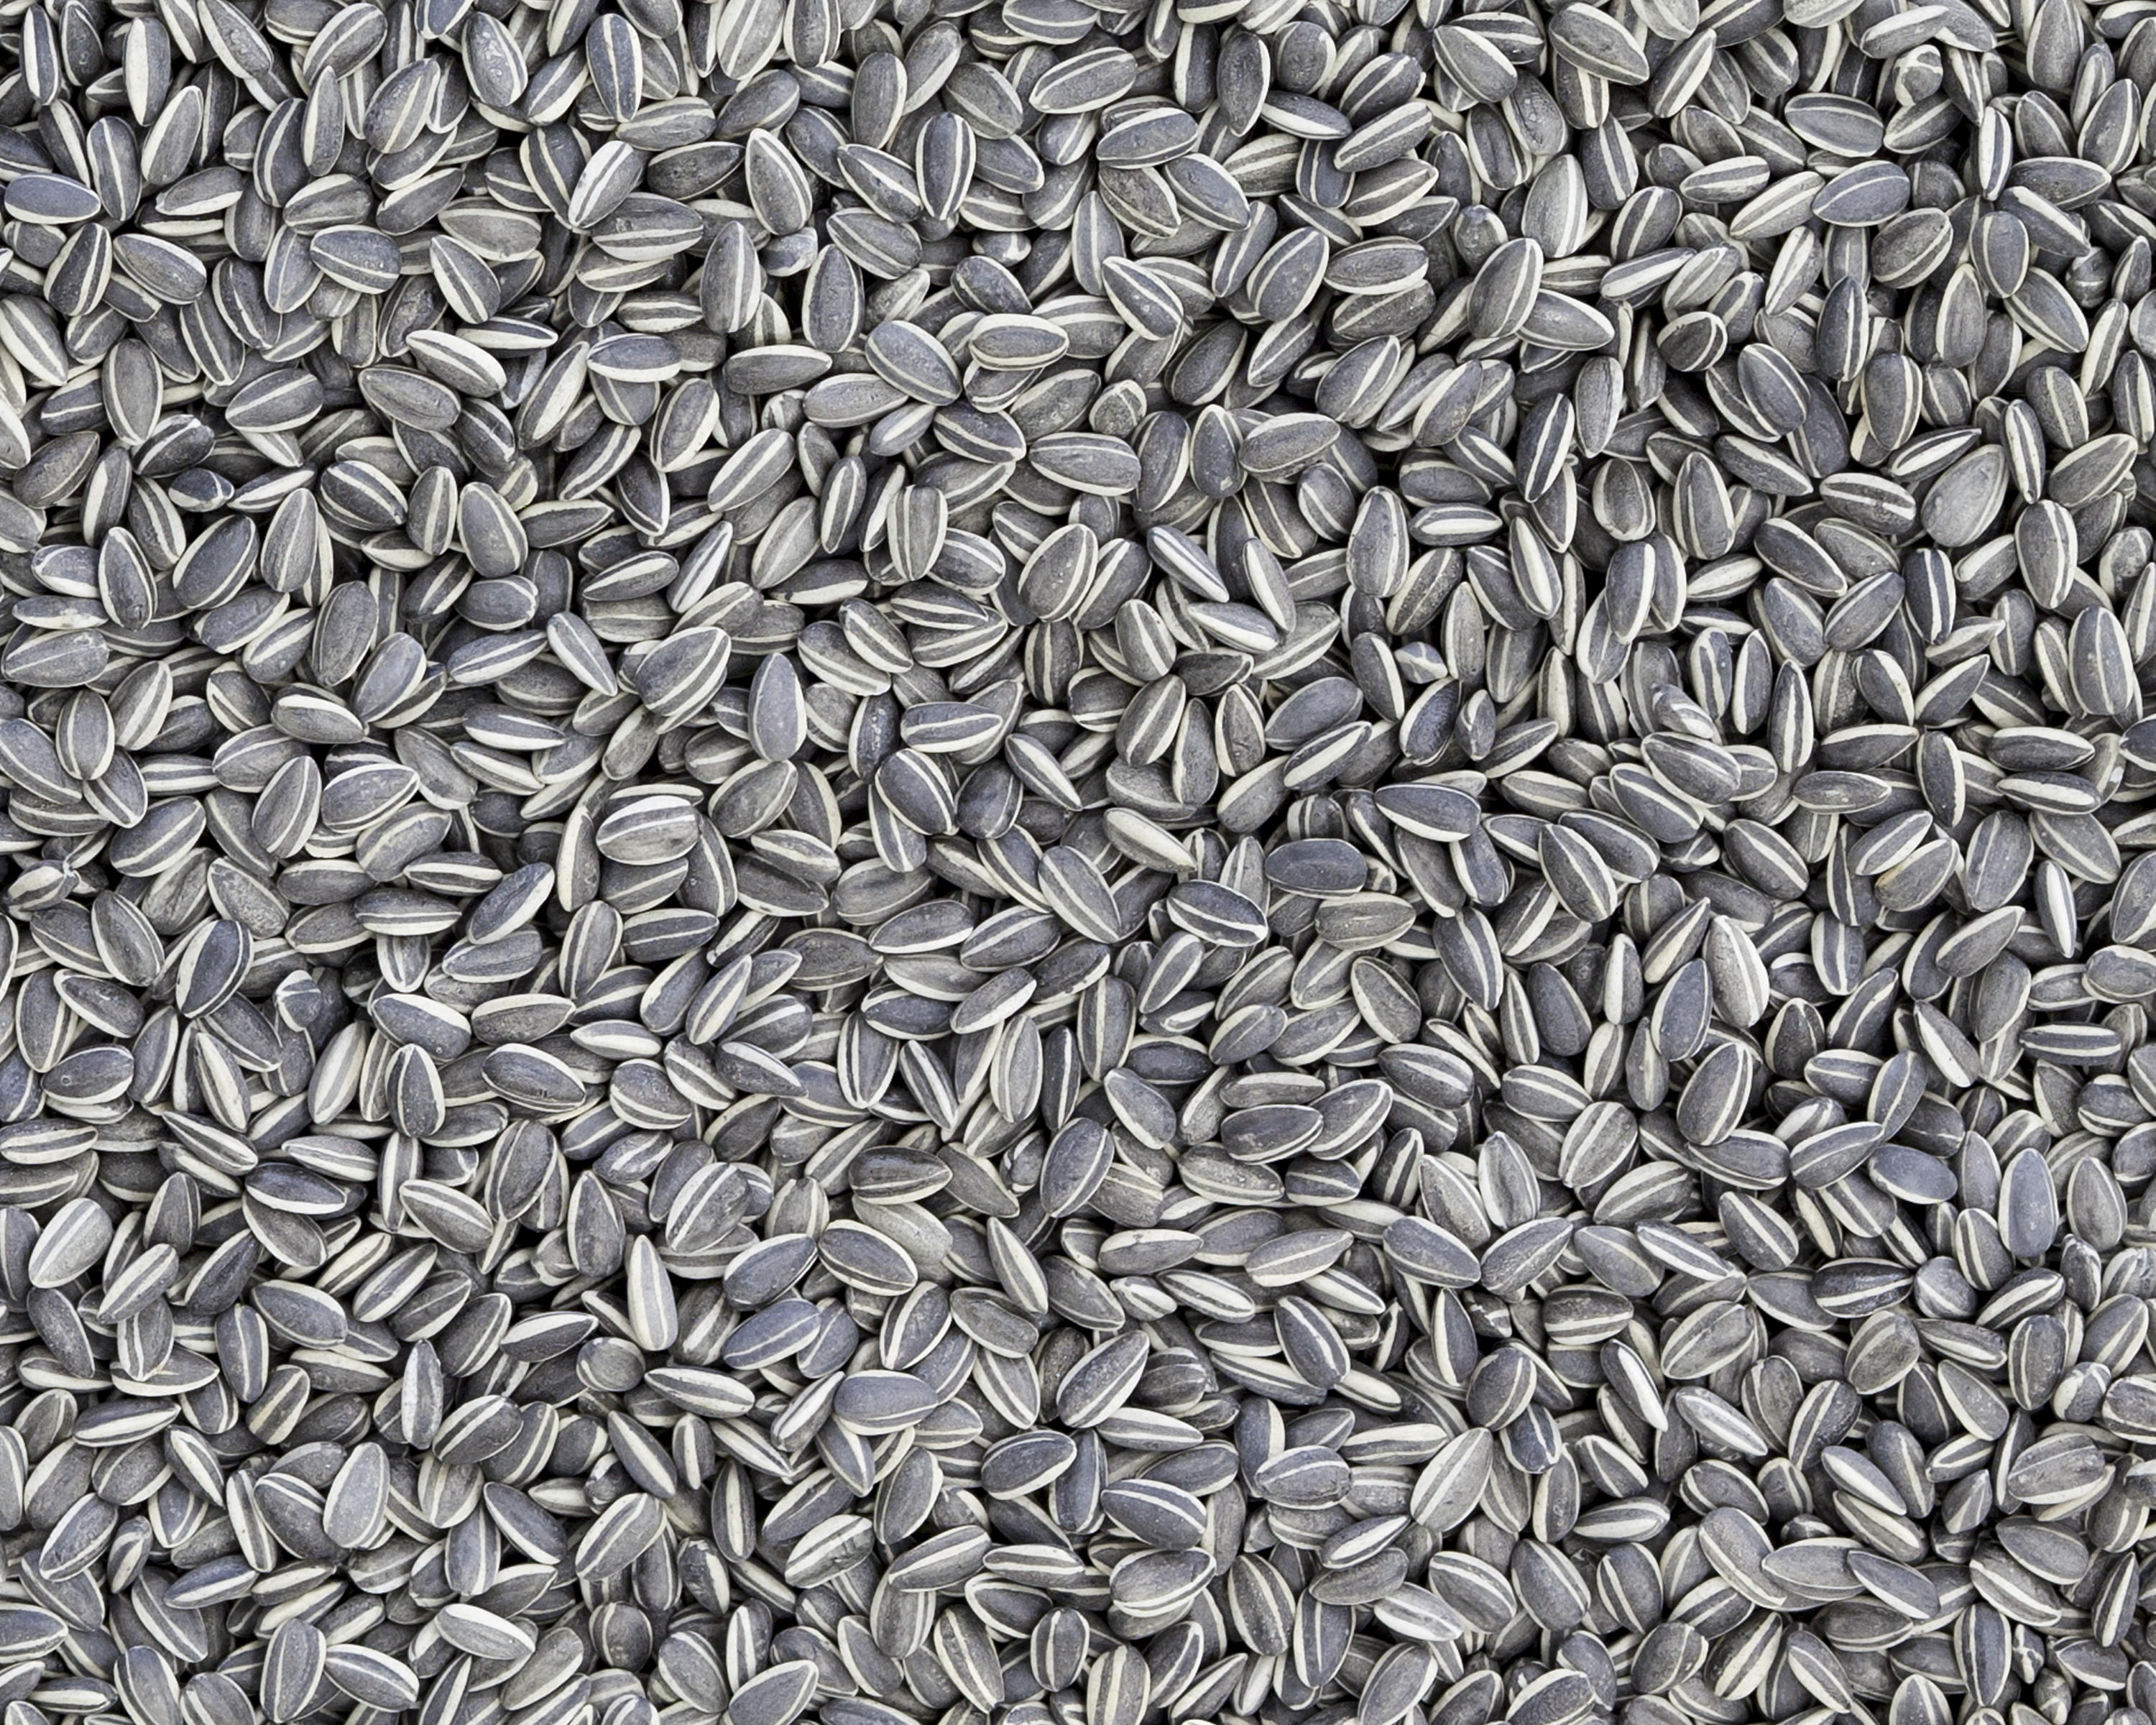 Sunflower Seeds, 2010.jpg